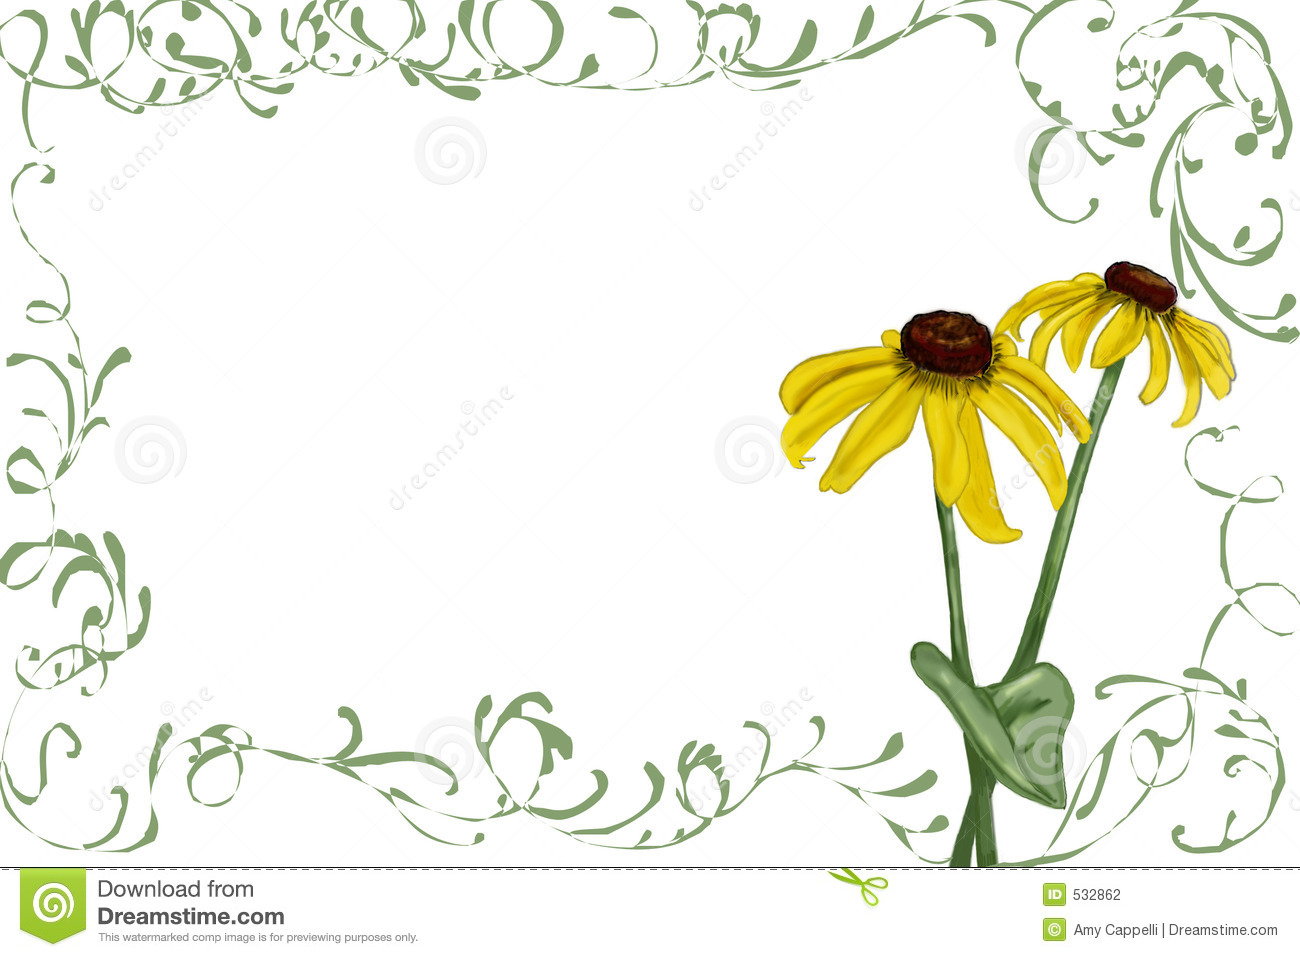 Rudbeckia with green vines